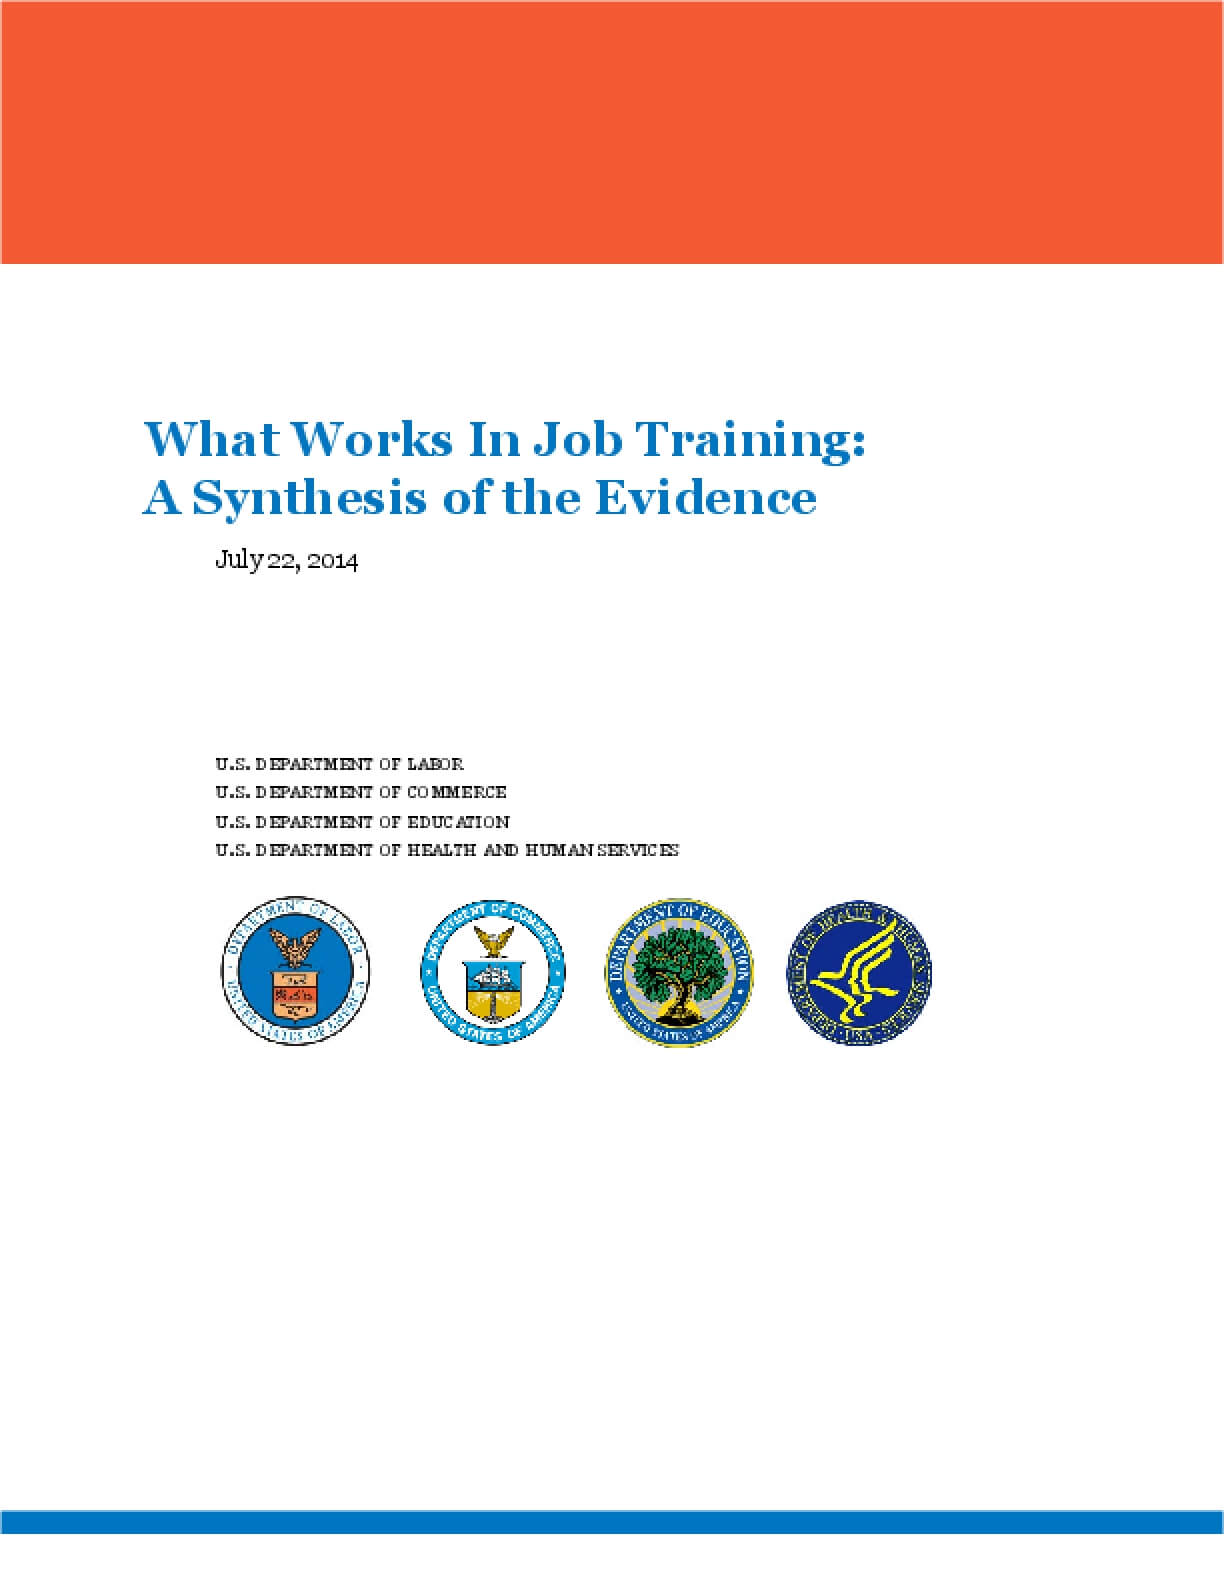 What Works In Job Training: A Synthesis of the Evidence